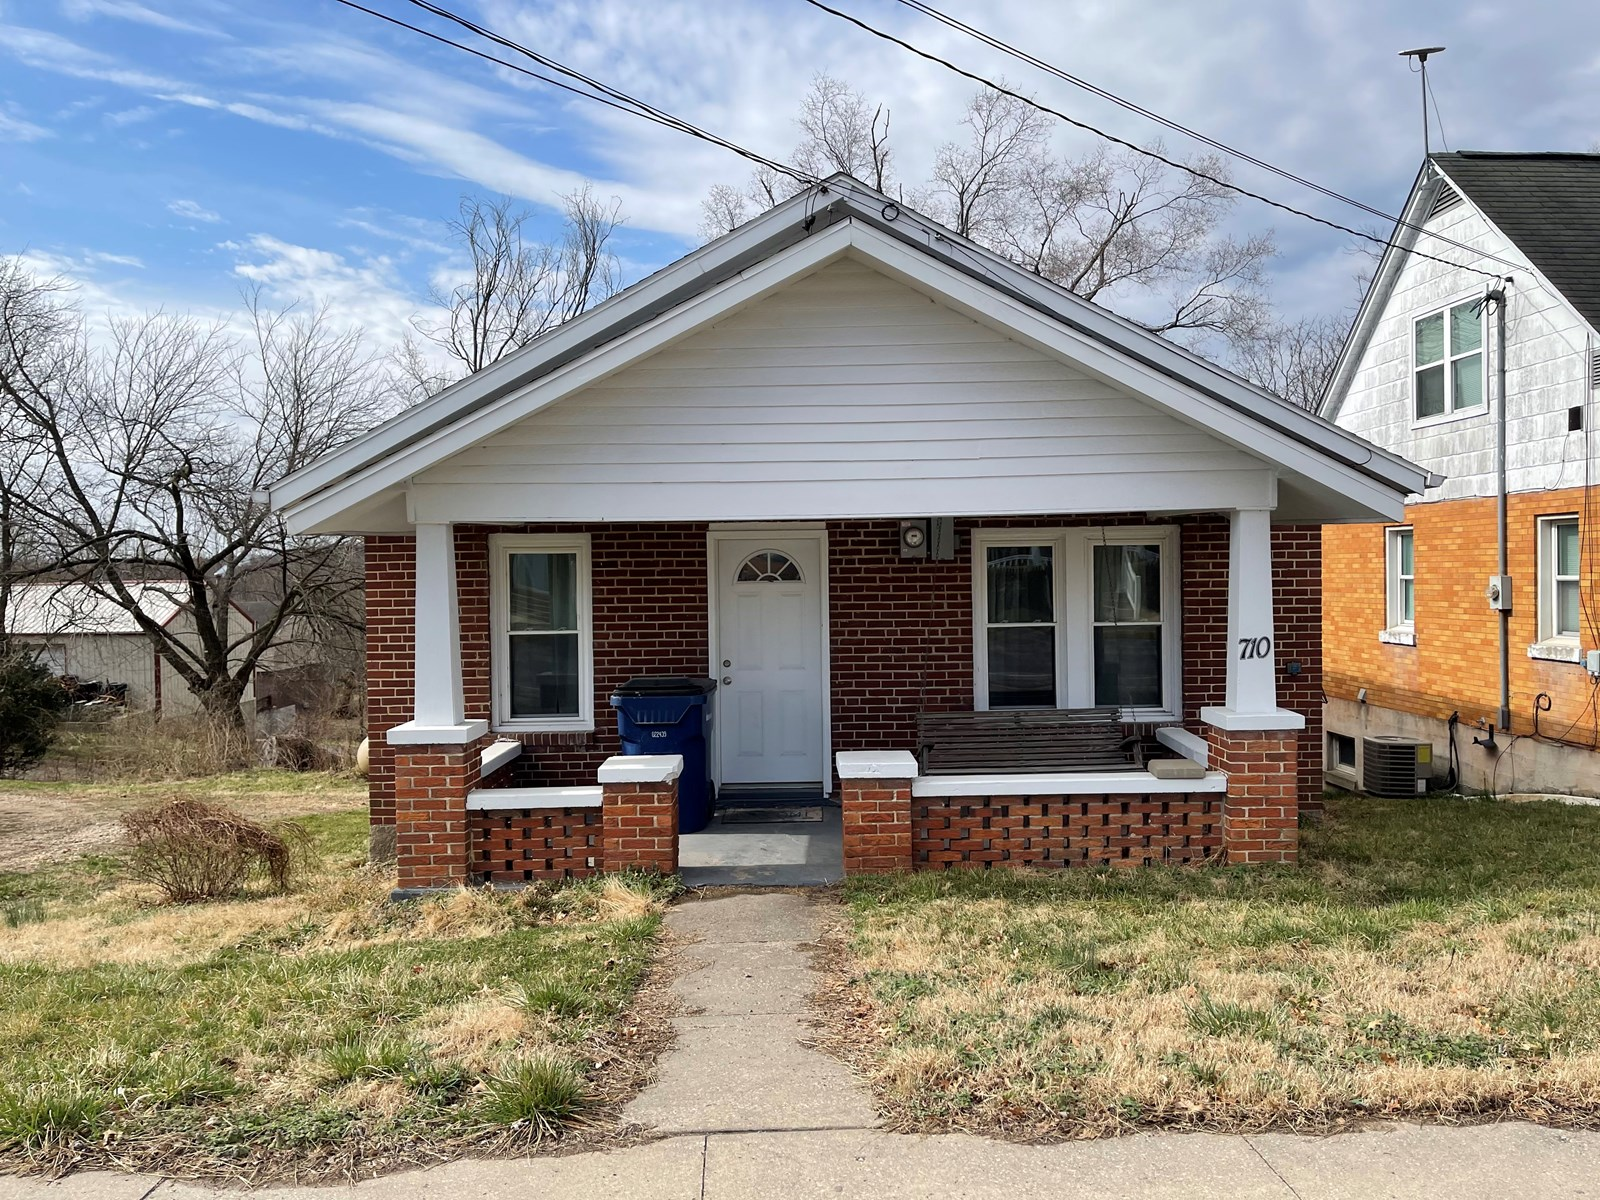 2 Bed, 1 Bath in Linn. Missouri